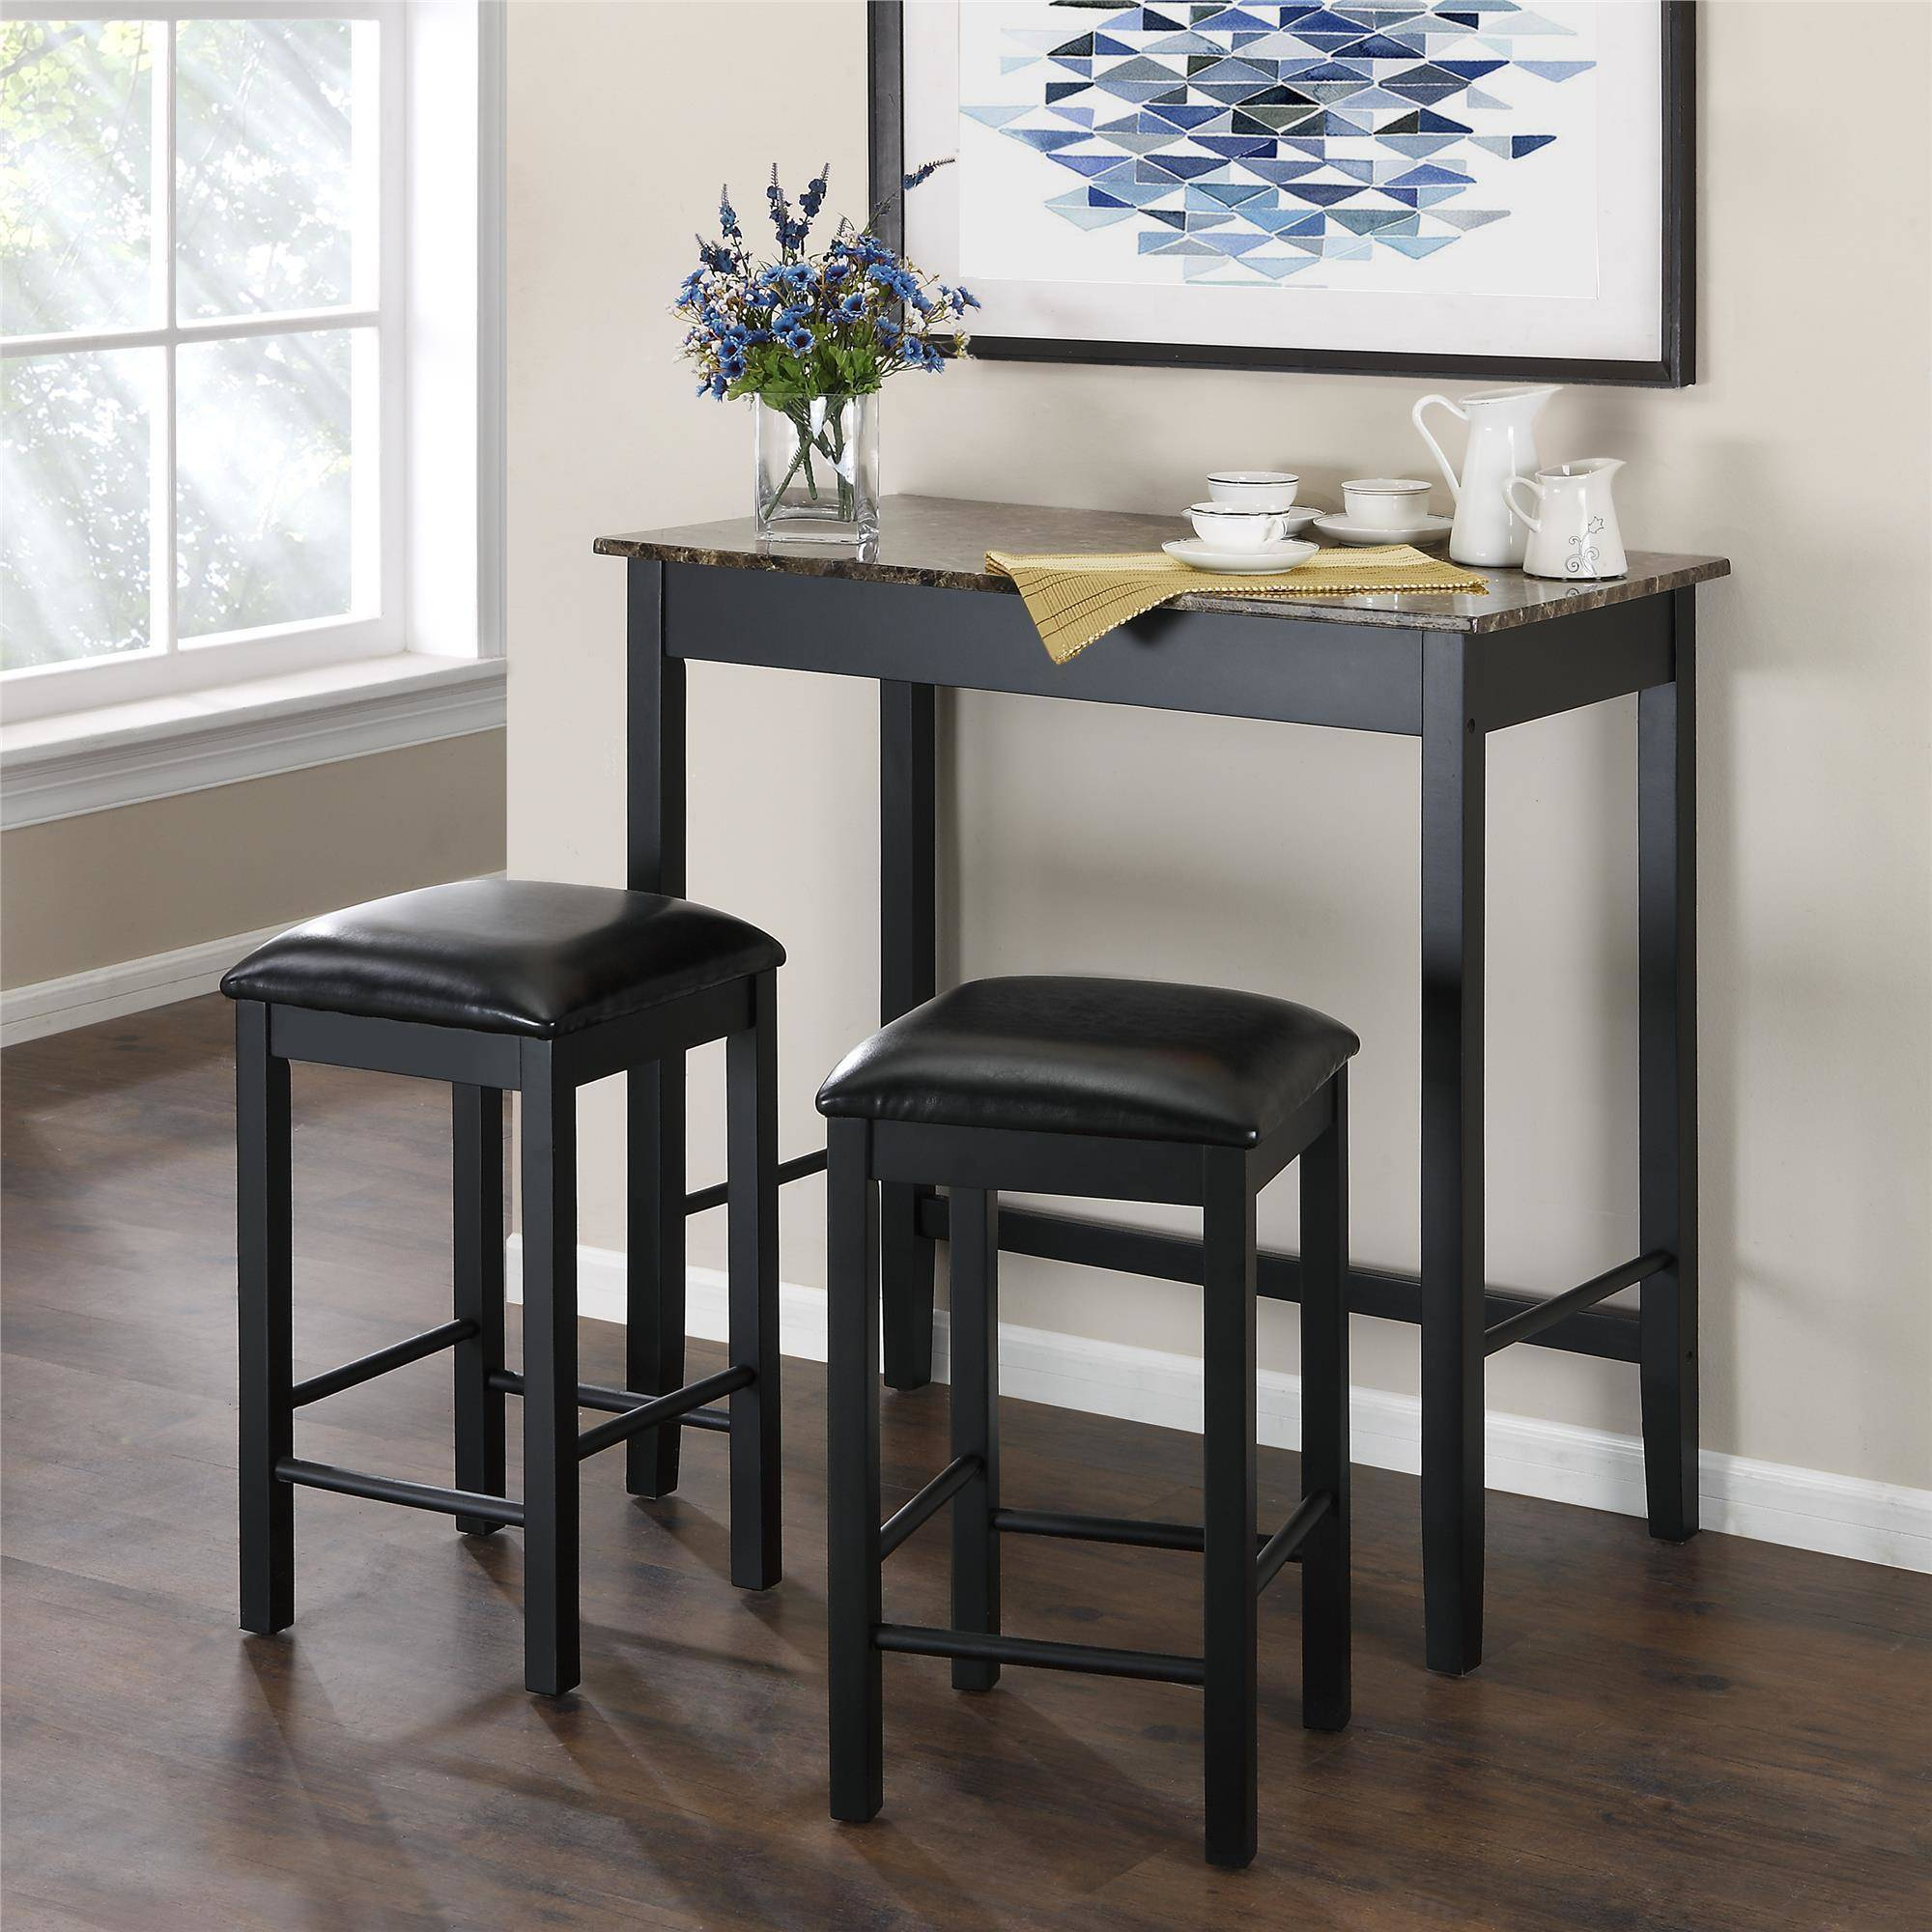 3 Piece Kitchen Table Set & With Regard To Fashionable Tappahannock 3 Piece Counter Height Dining Sets (View 4 of 20)